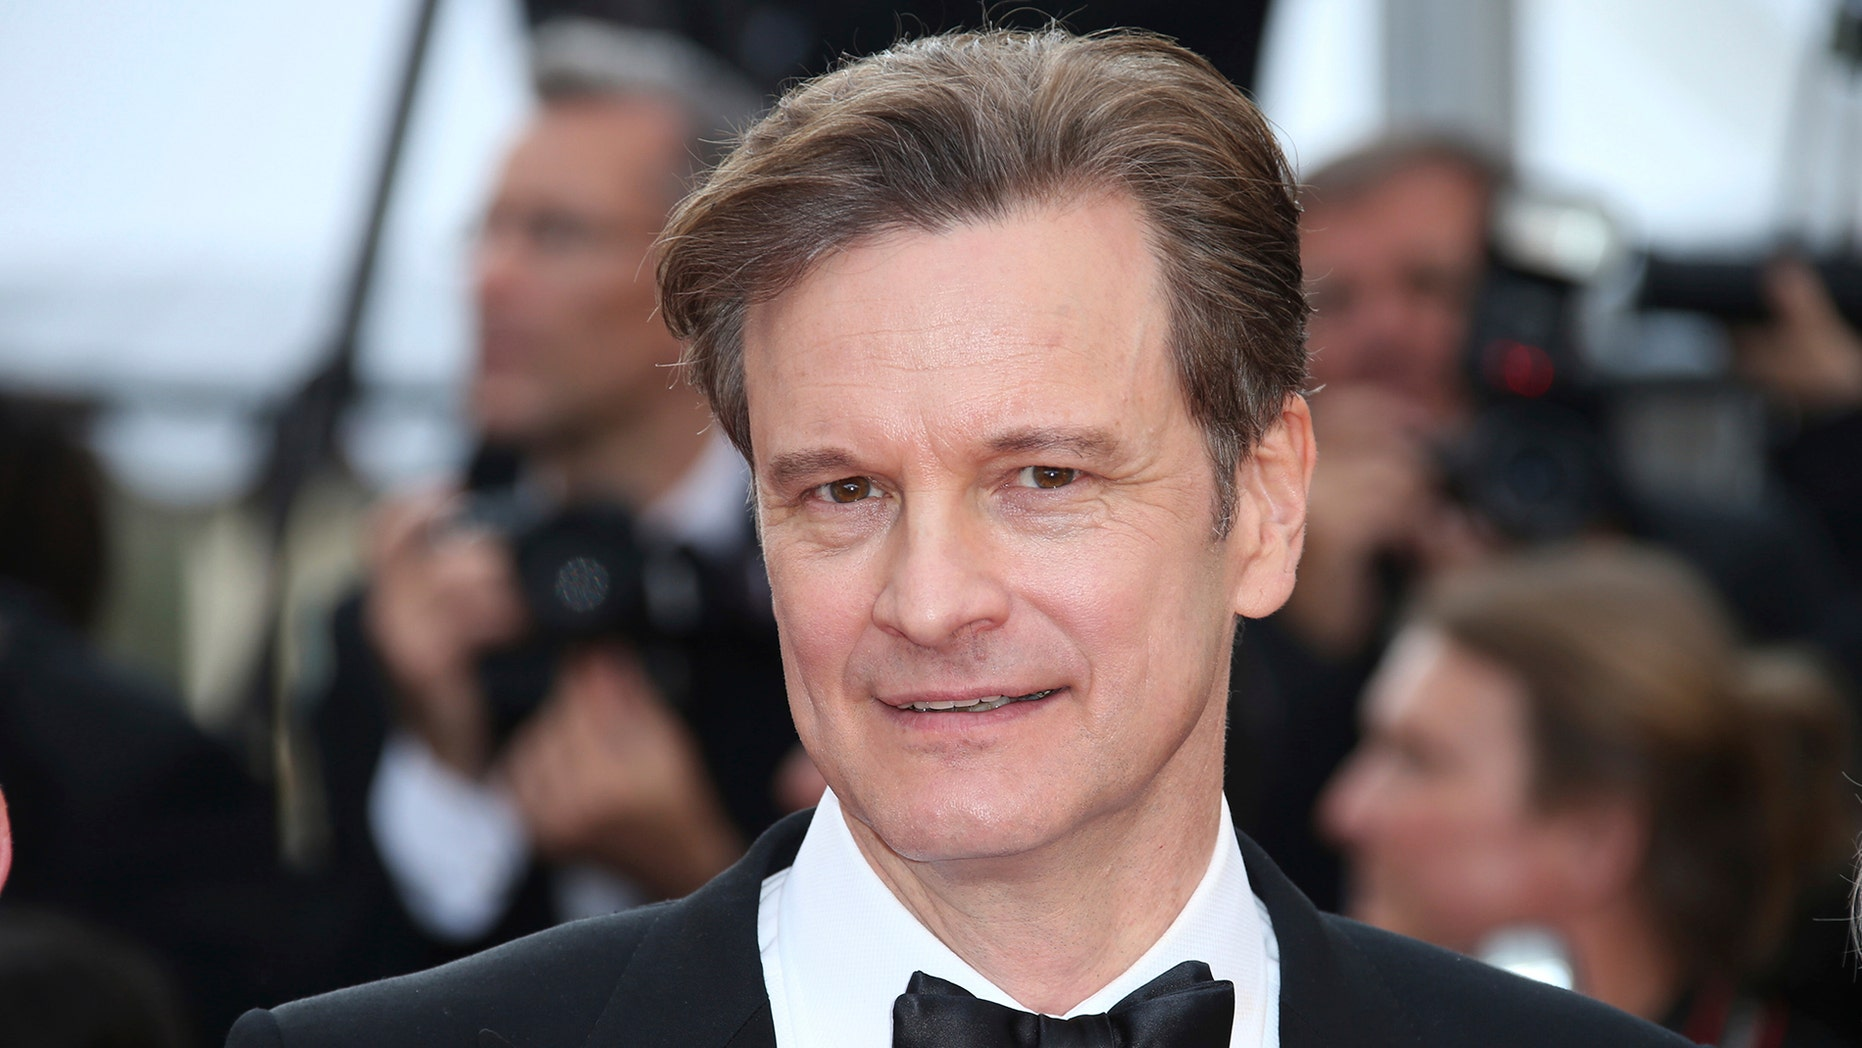 """In this Monday, May 16, 2016 file photo, actor Colin Firth poses for photographers upon arrival at the screening of the film Loving at the 69th international film festival, Cannes, southern France. British actor Colin Firth says he has taken Italian citizenship as a """"sensible"""" move amid global political uncertainty."""